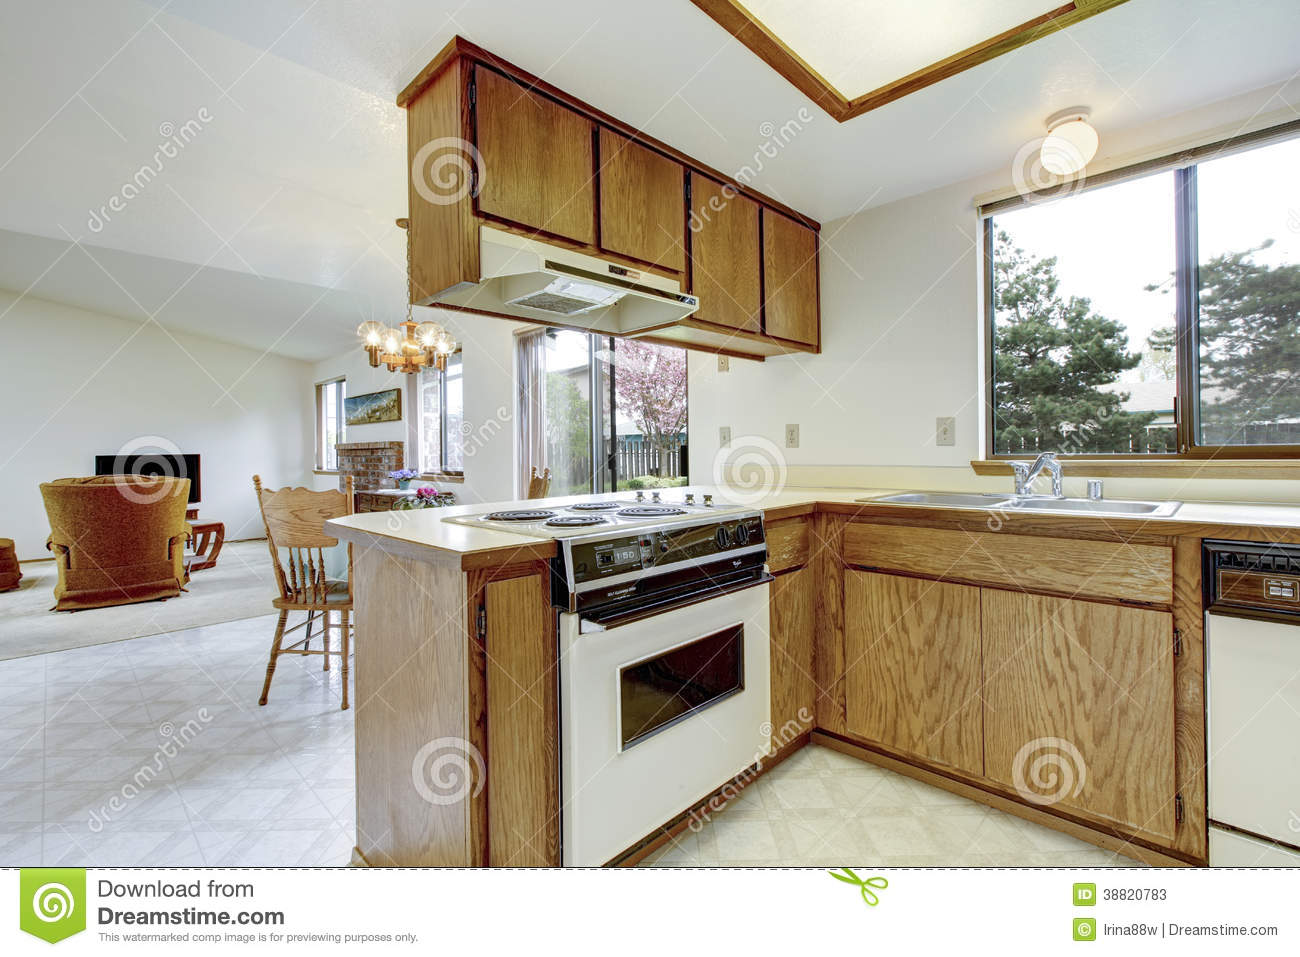 Simple Kitchen Room Interior Stock Photo Image 38820783